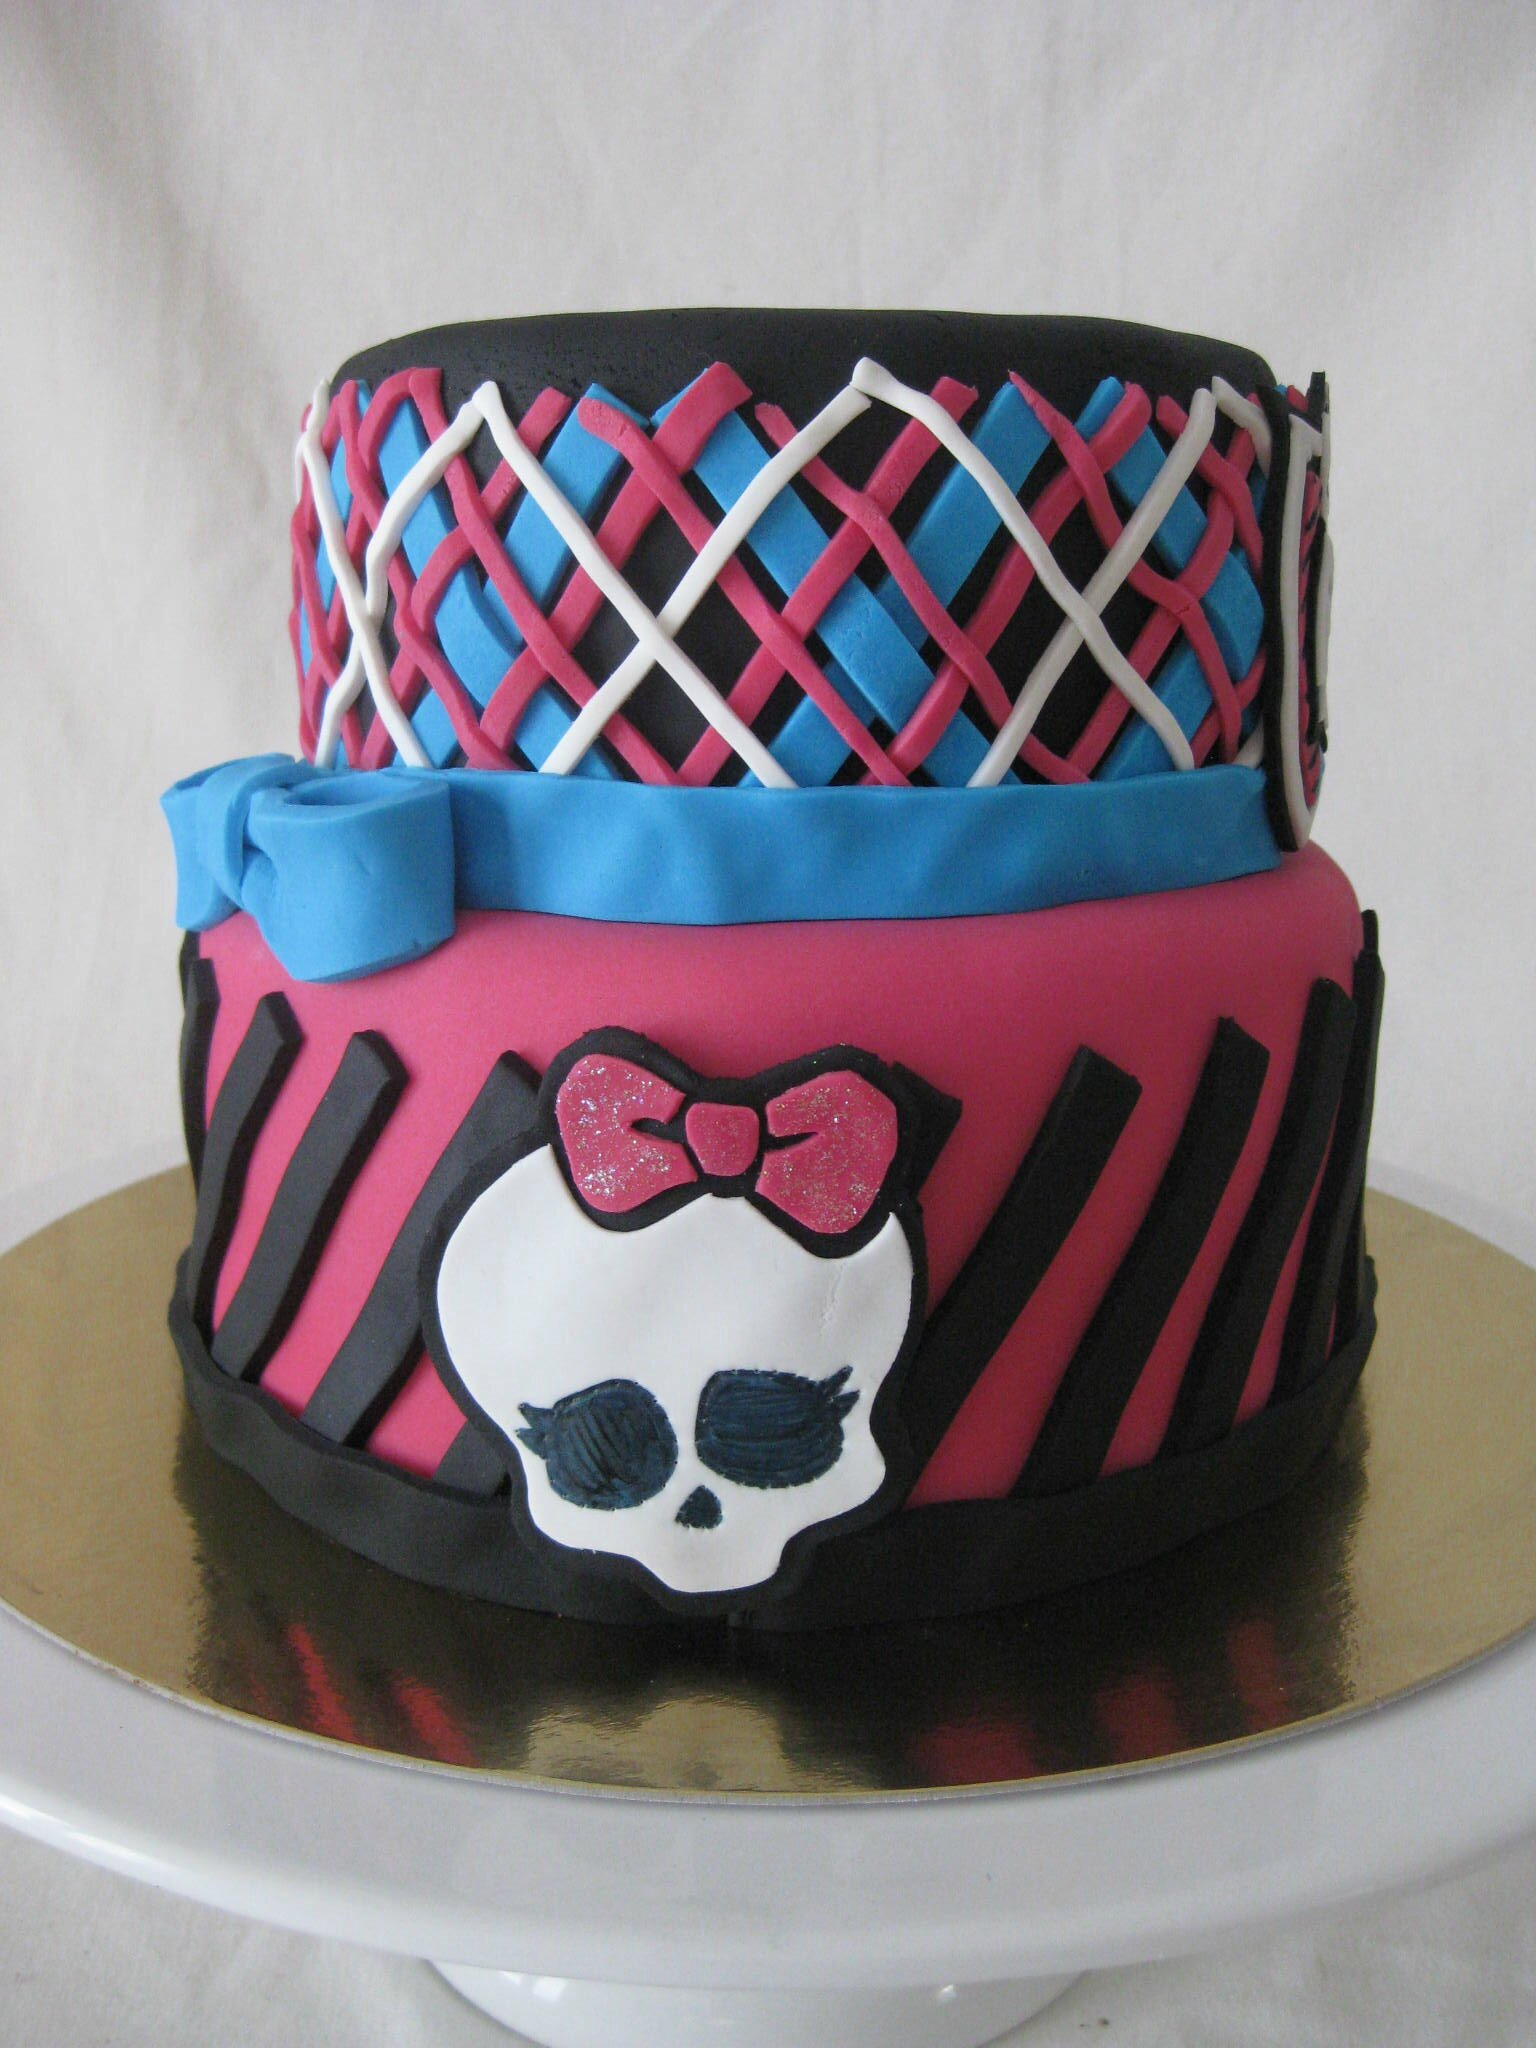 Favori Gâteau Monster High - Monster High Cake - Les Hobbies d'Aurélie PF37